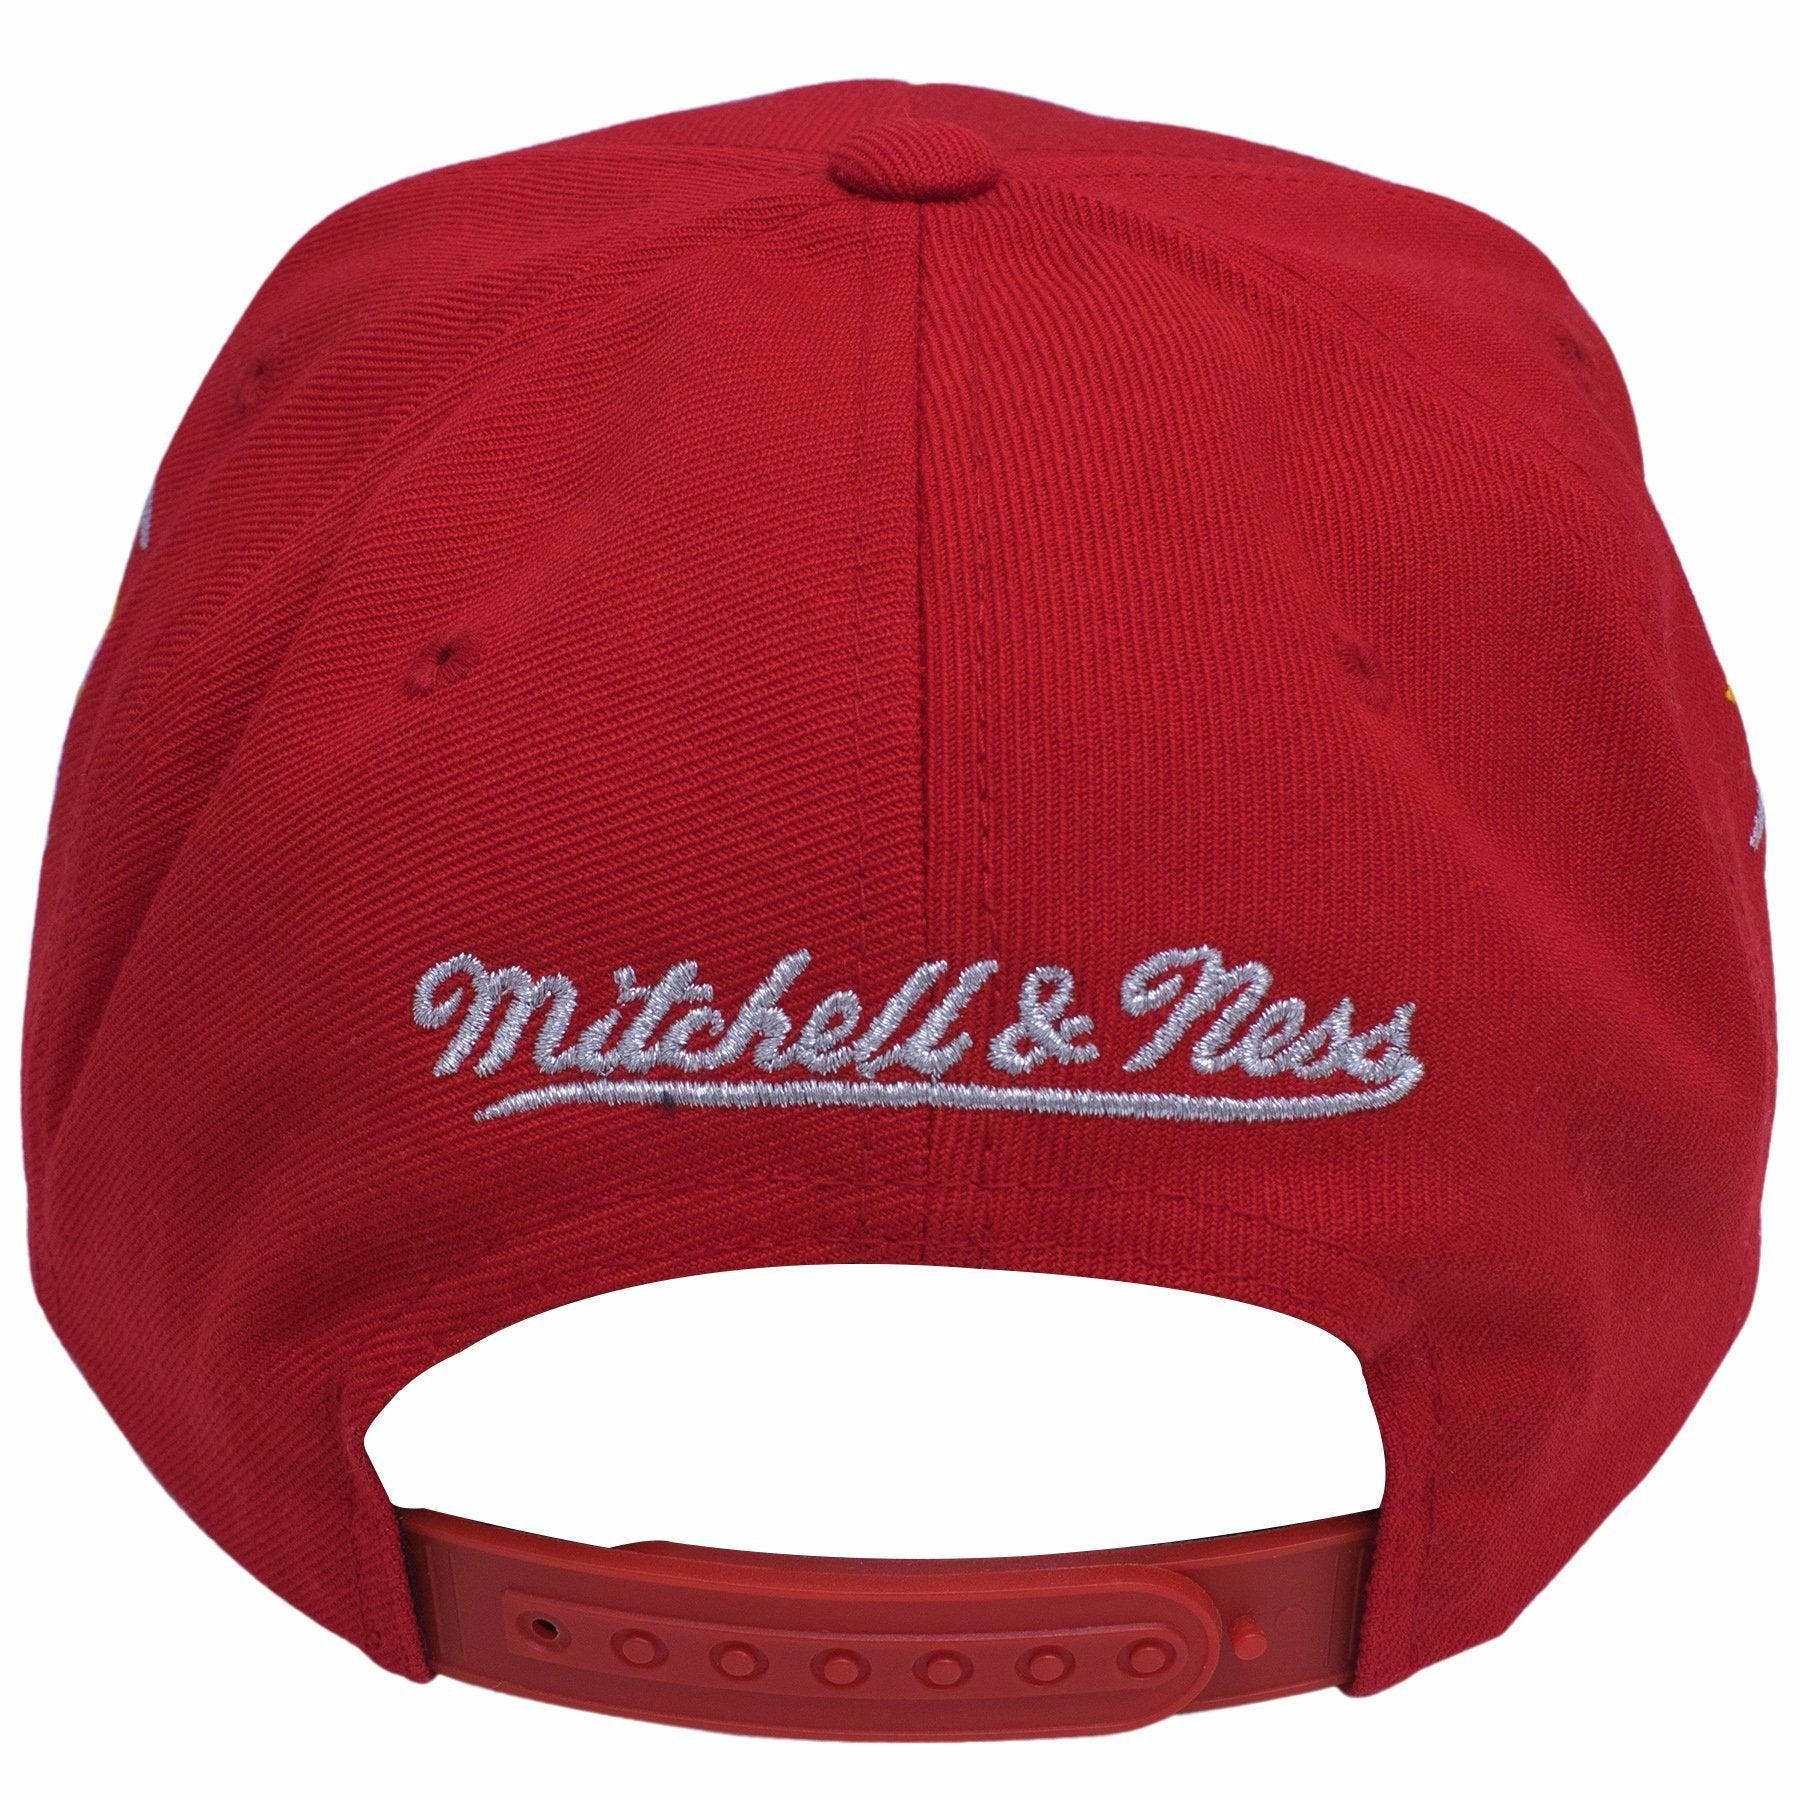 89b13c8d123831 ... on the back of the houston rockets diamond spikes mitchell and ness snapback  hat, there ...